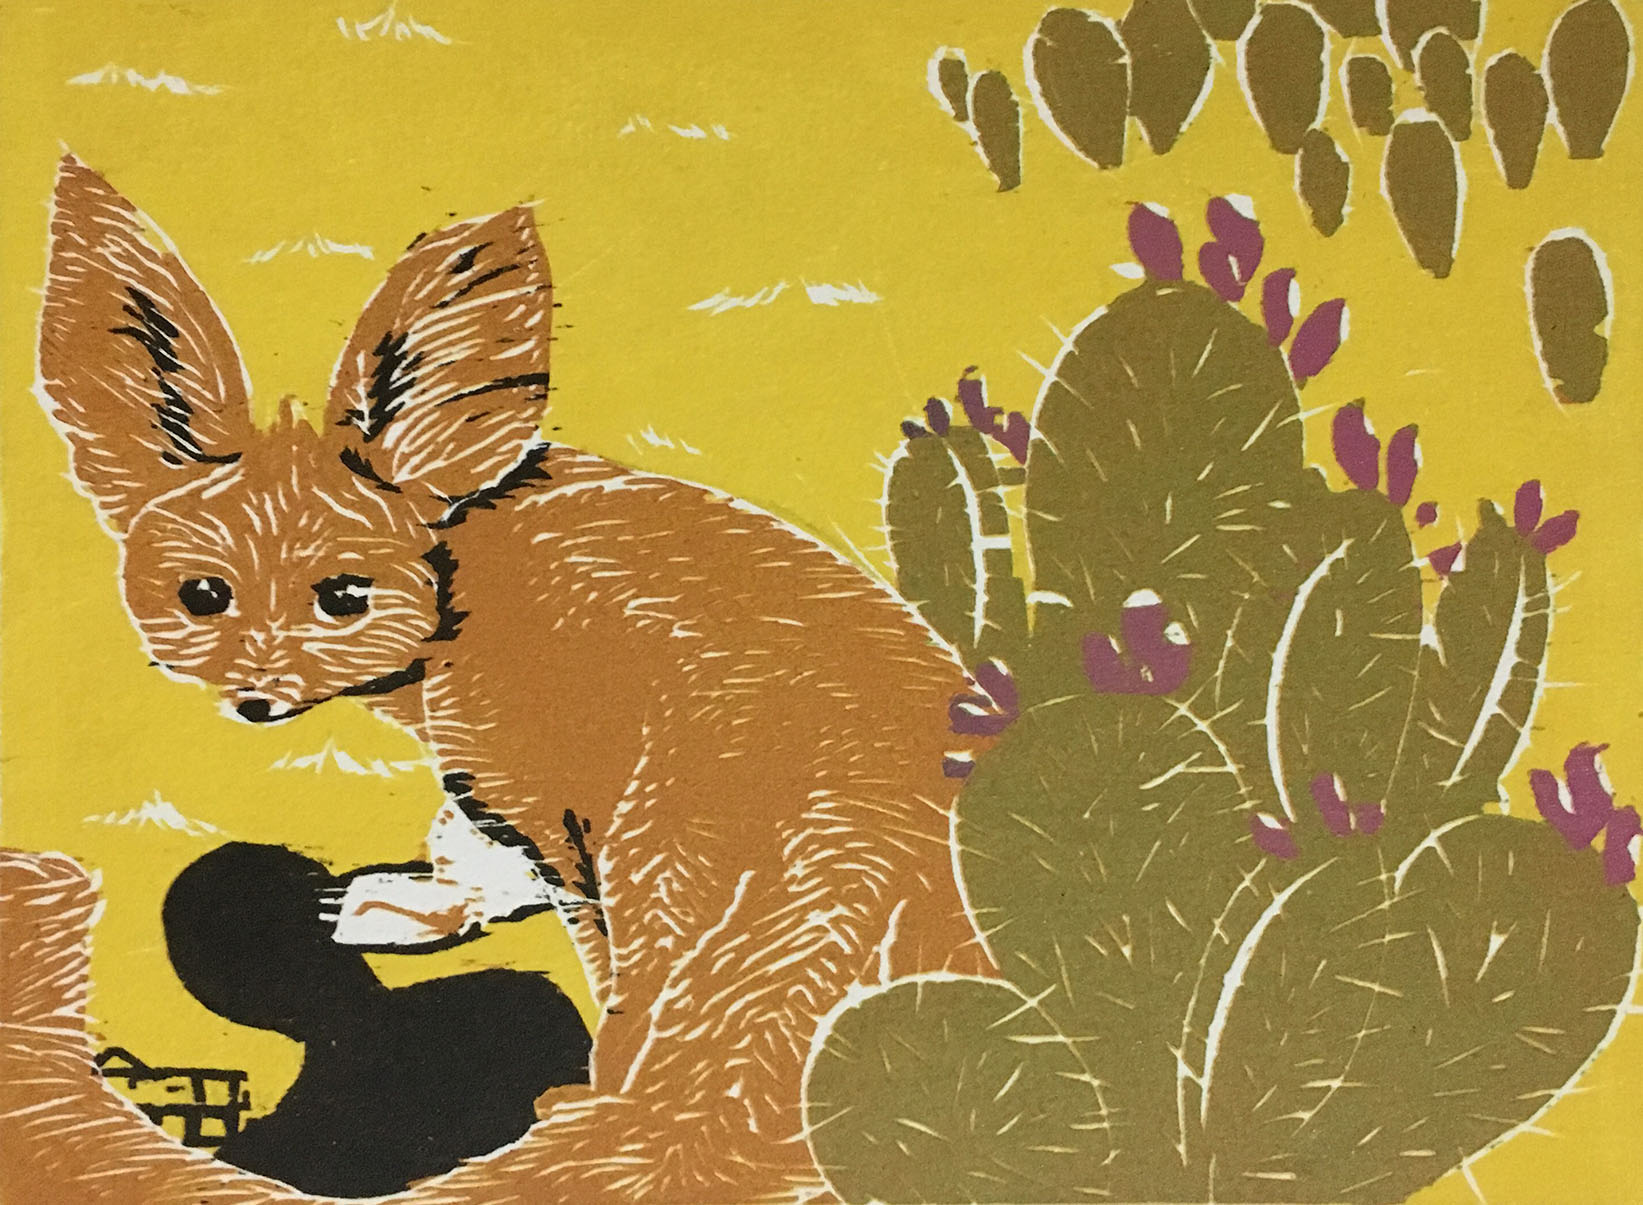 There's a Catch  by Yeisy Rodriguez is reduction woodcut depicting a fennec fox about to be captured. The fennec fox is not considered endangered but is affected by pet and fur trade.